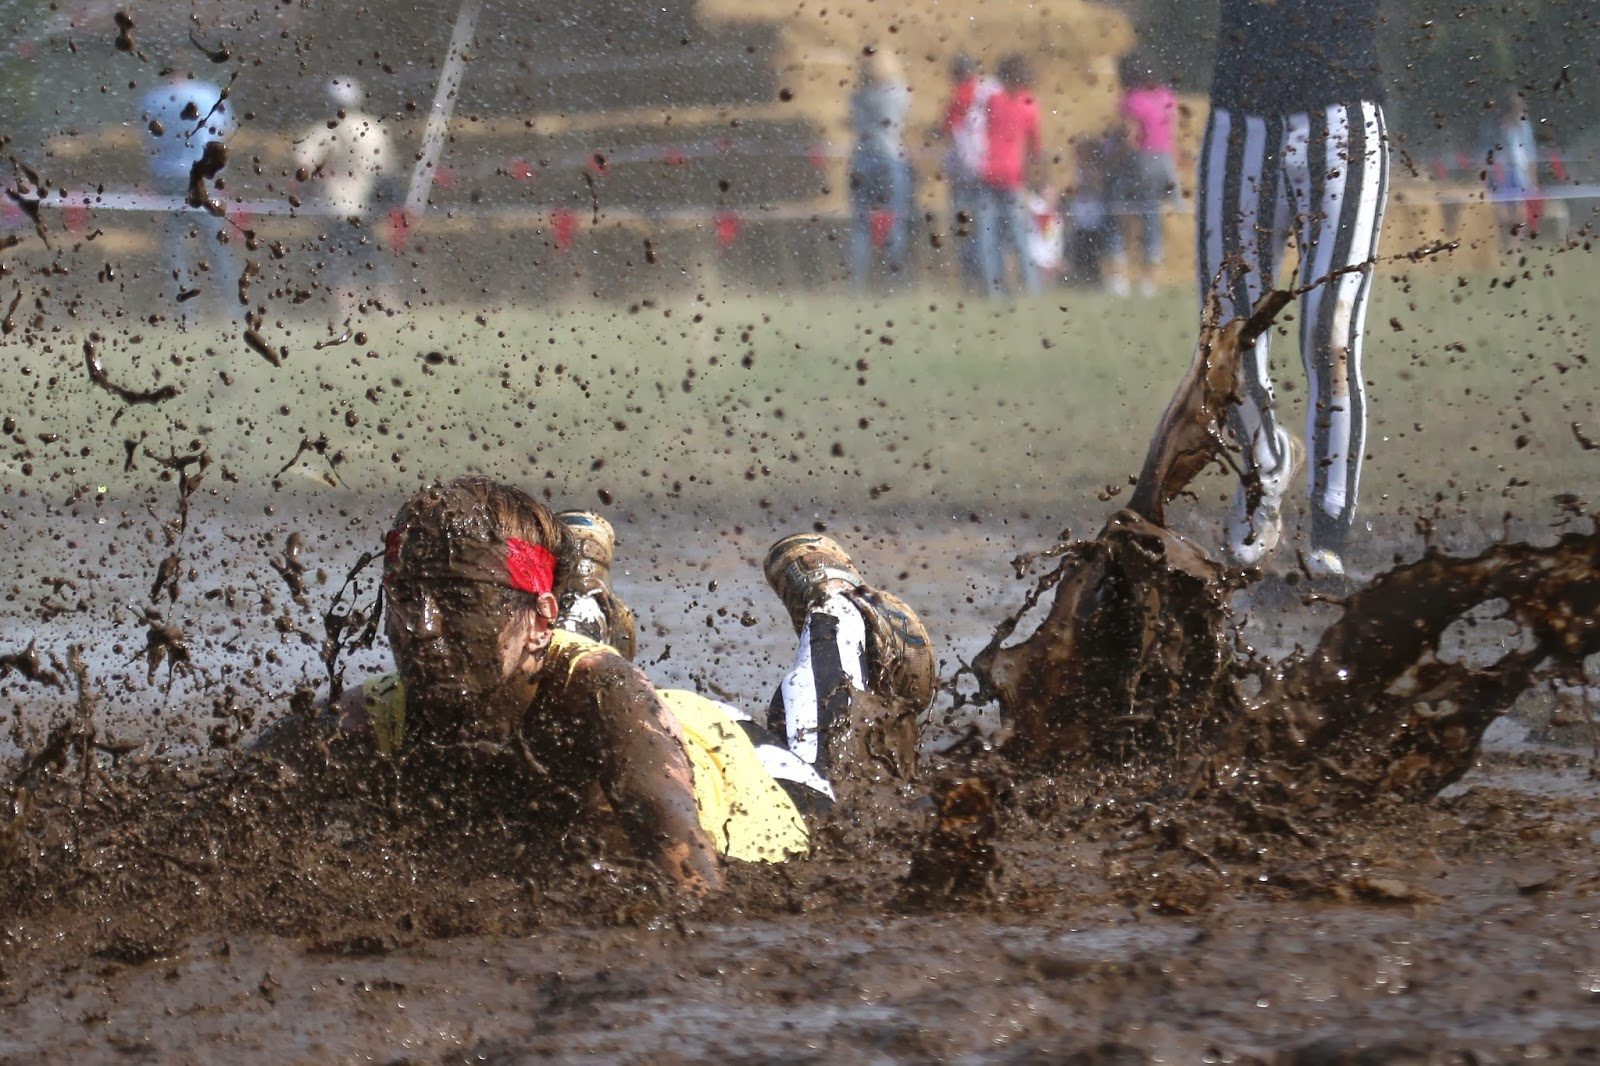 Beynes, Competition, Course, France, Mud Day, Mud Day Challenge, Offbeat, Paris, Participants, Sports,